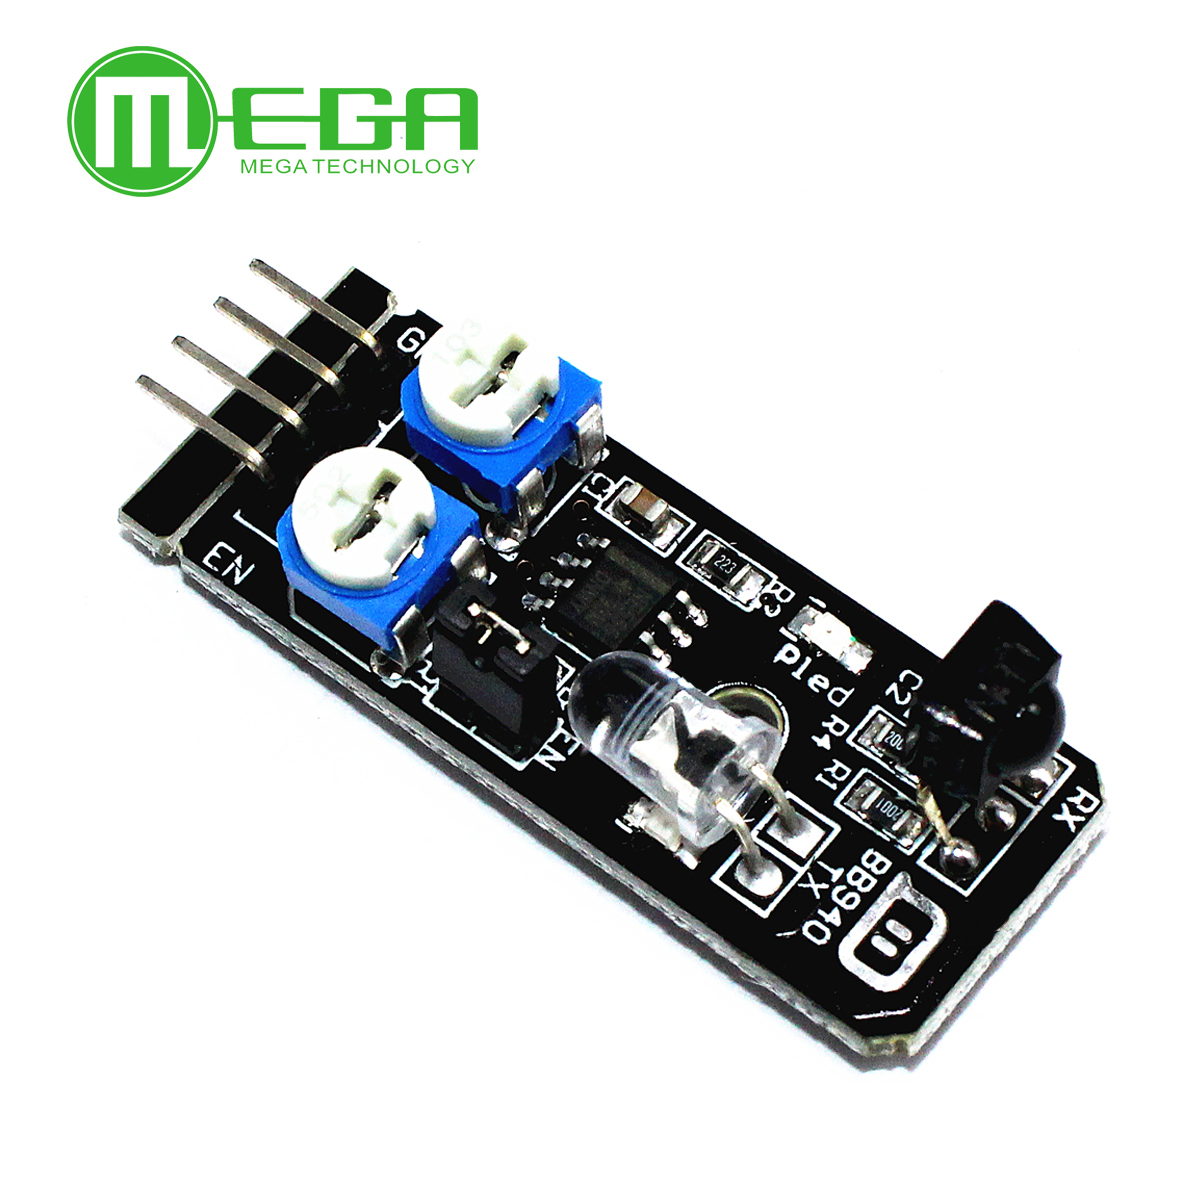 10pcs/lot  KY-032 4pin IR Infrared Obstacle Avoidance Sensor Module for Diy Smart Car Robot KY03210pcs/lot  KY-032 4pin IR Infrared Obstacle Avoidance Sensor Module for Diy Smart Car Robot KY032